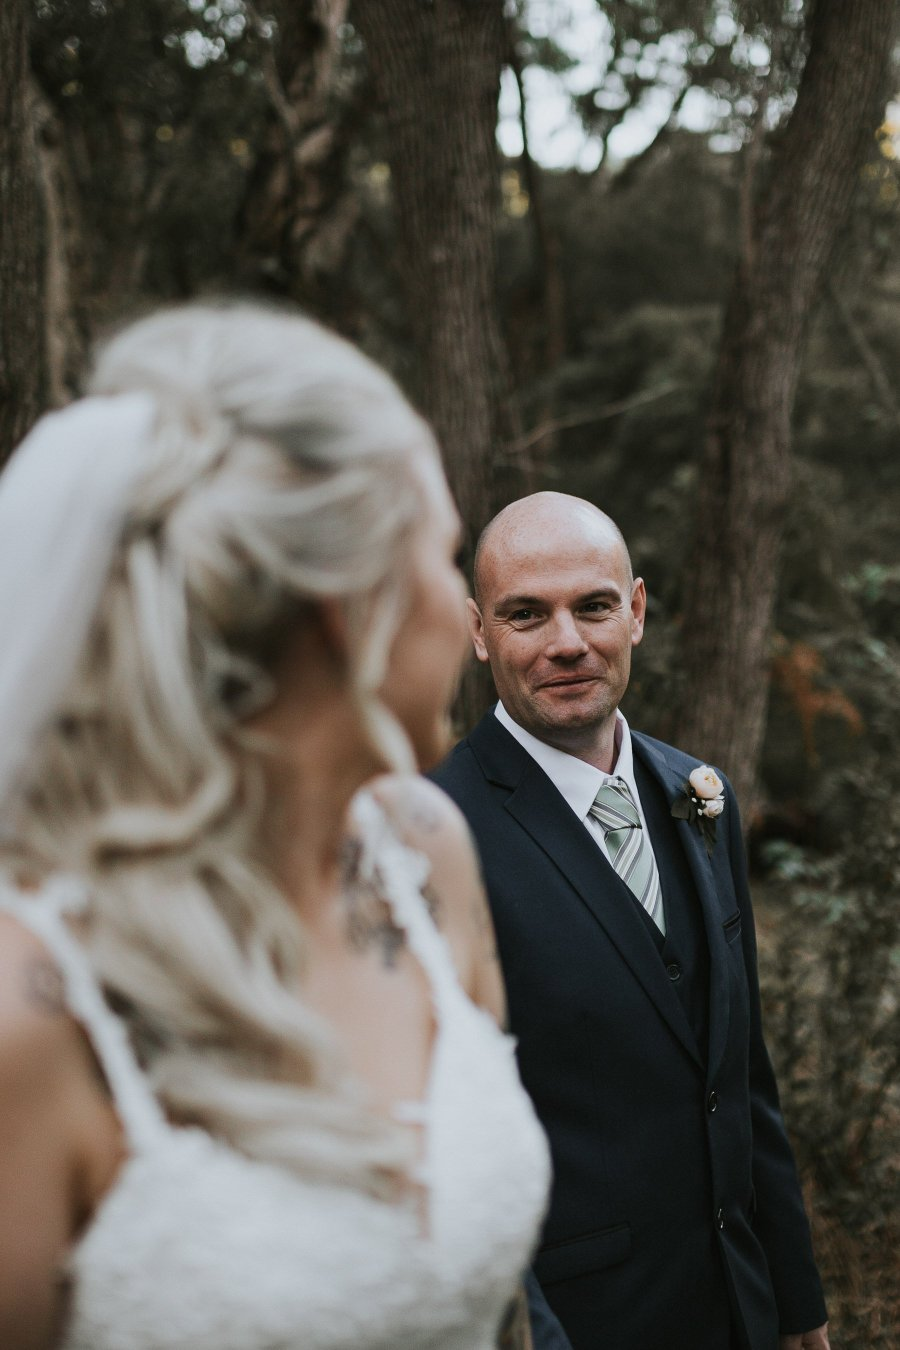 Ebony Blush Photography | Perth Wedding Photographer | Kate + Gareth | Yallingup Wedding Photos51